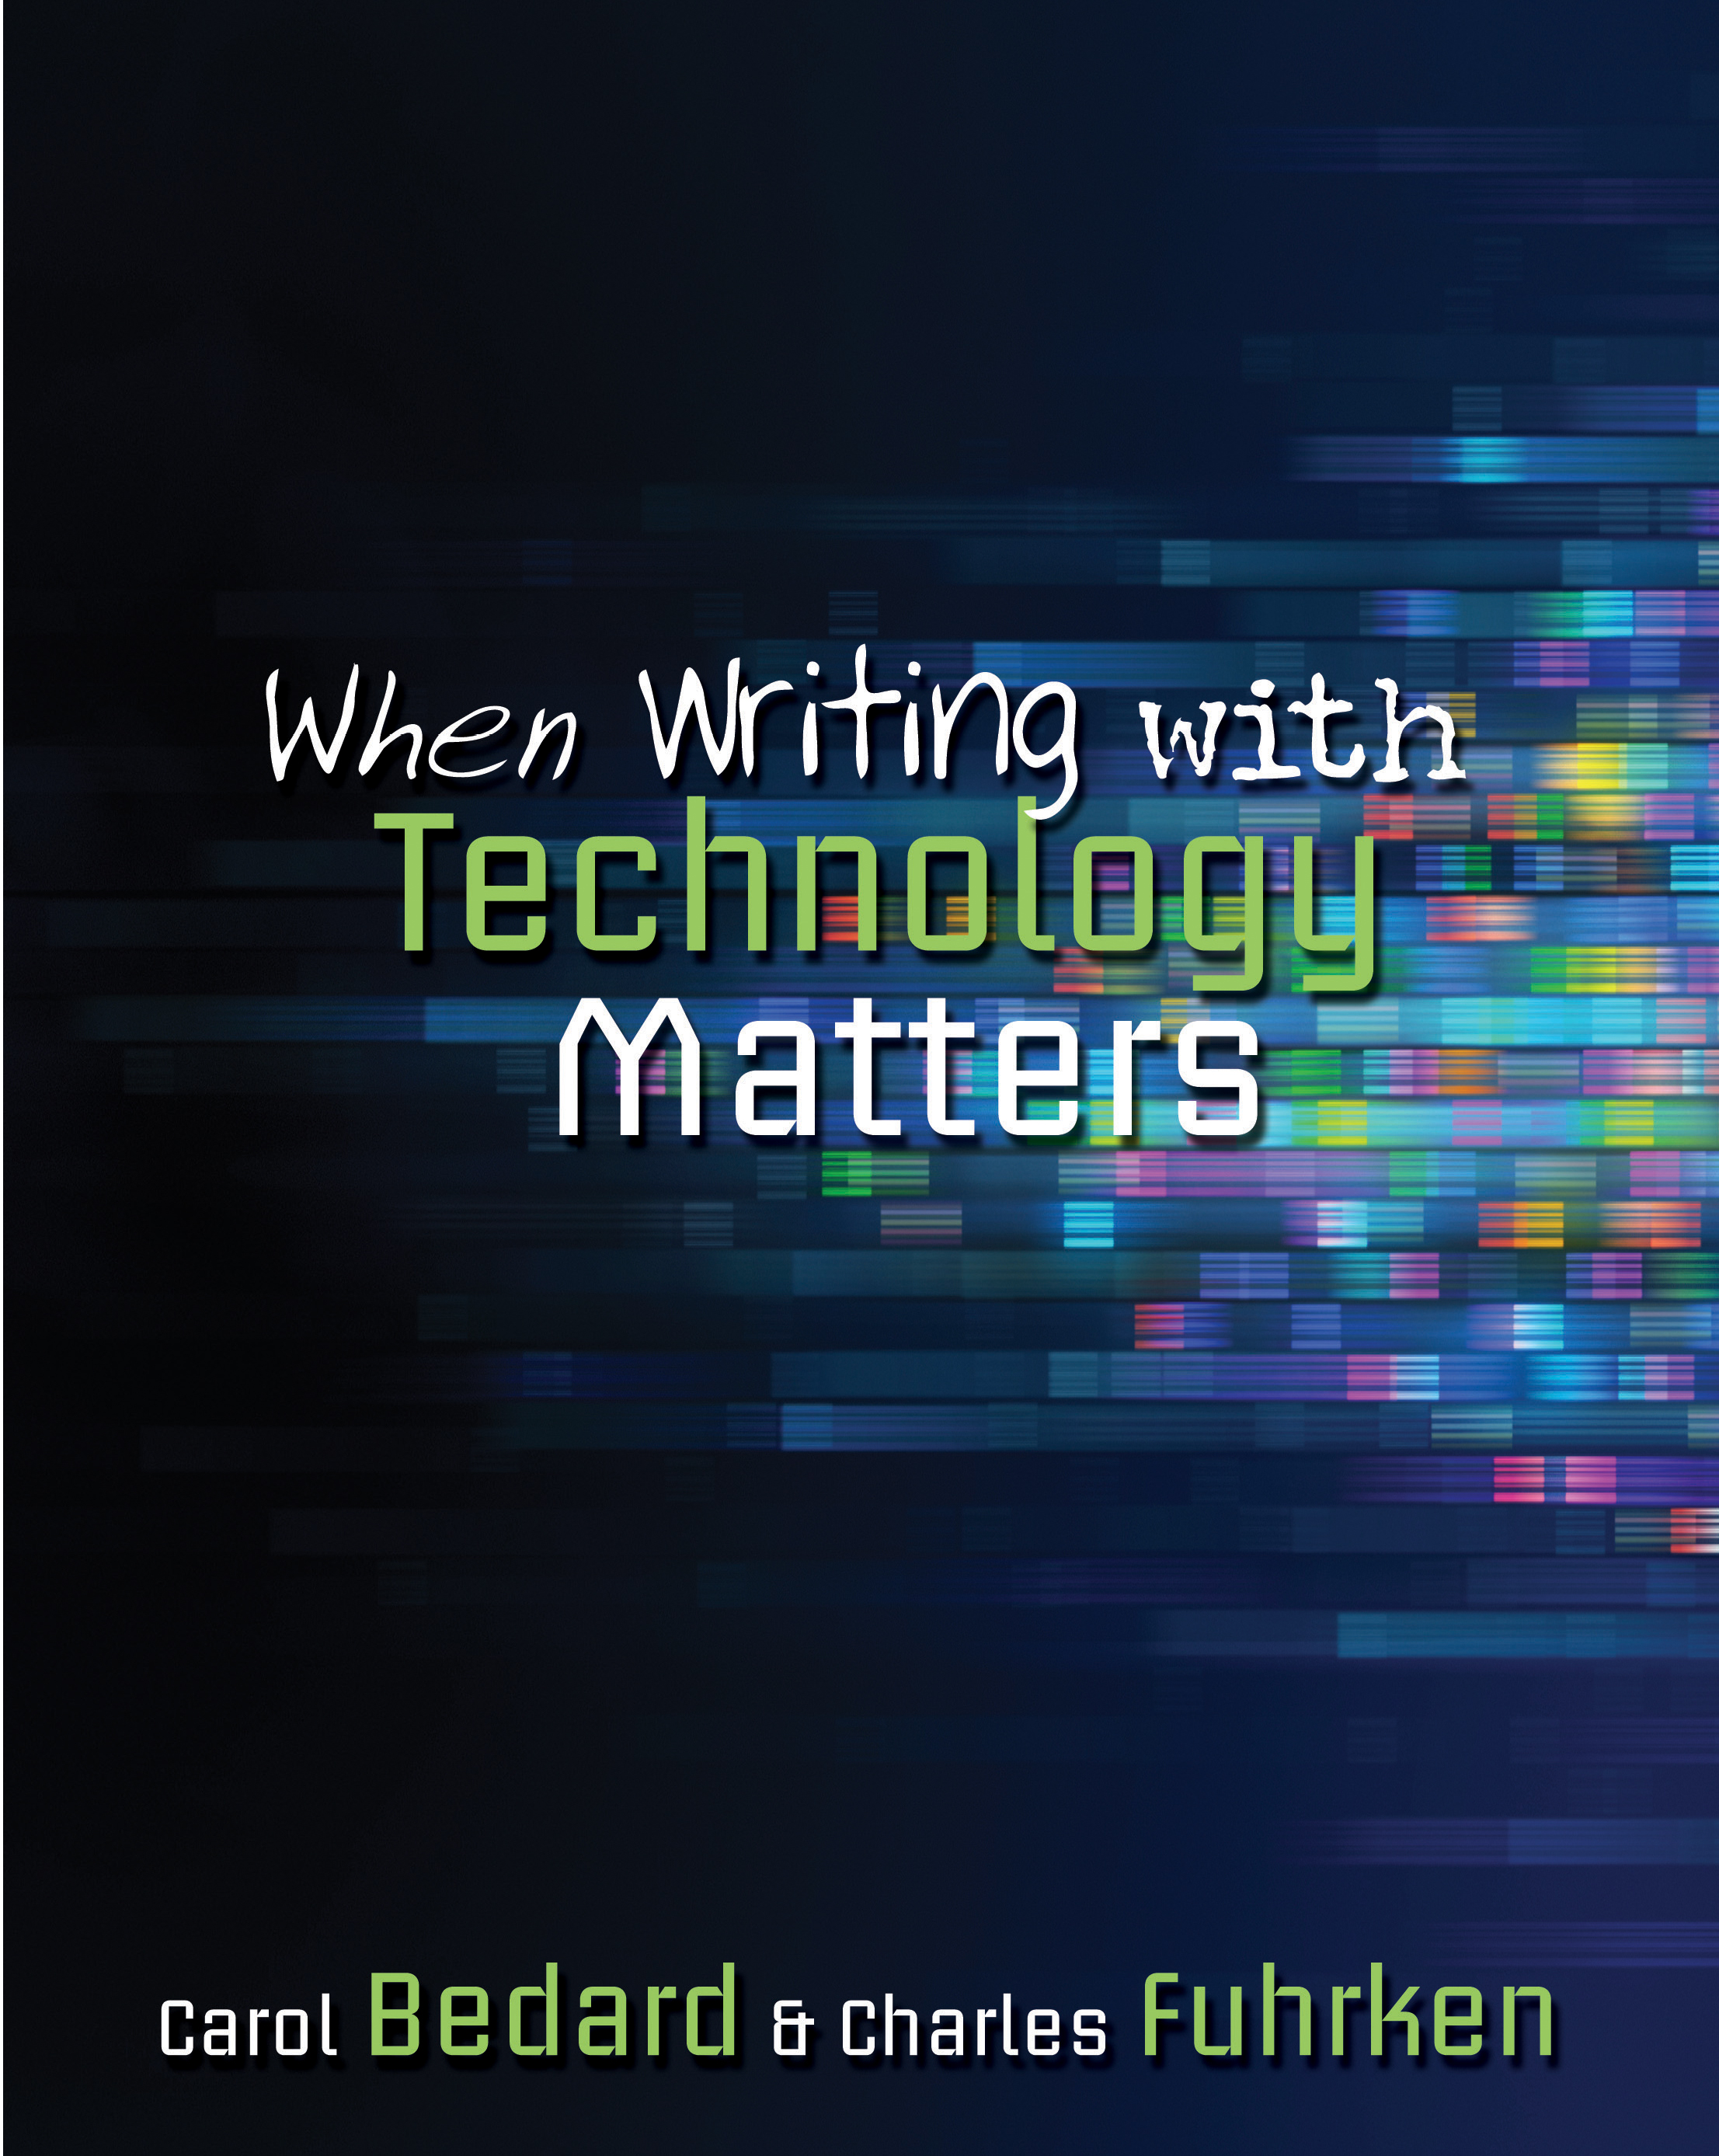 The best essay writer about technology